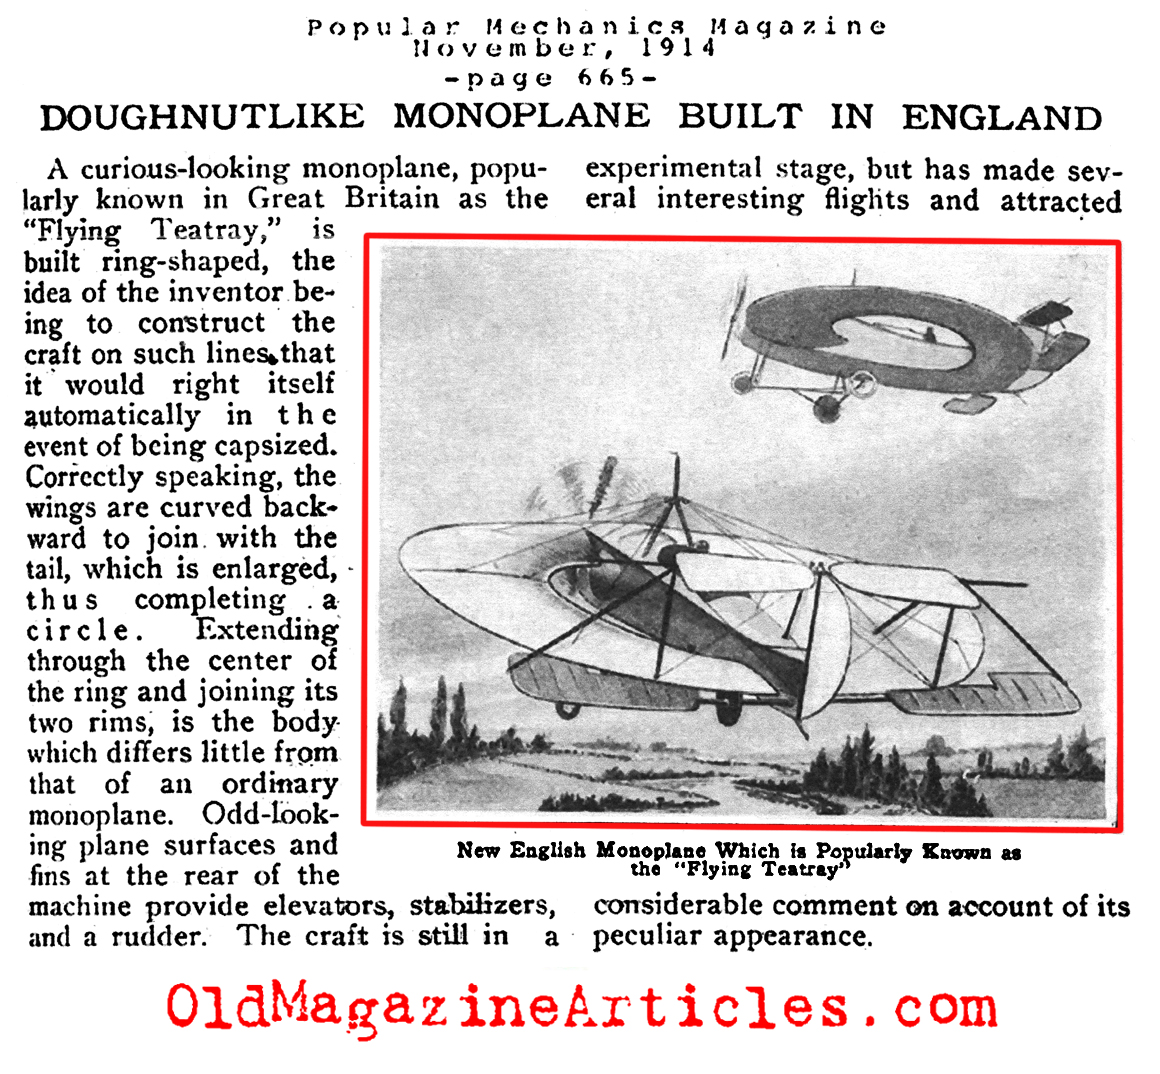 The Round-Winged Monoplane (Popular Mechanics, 1914)